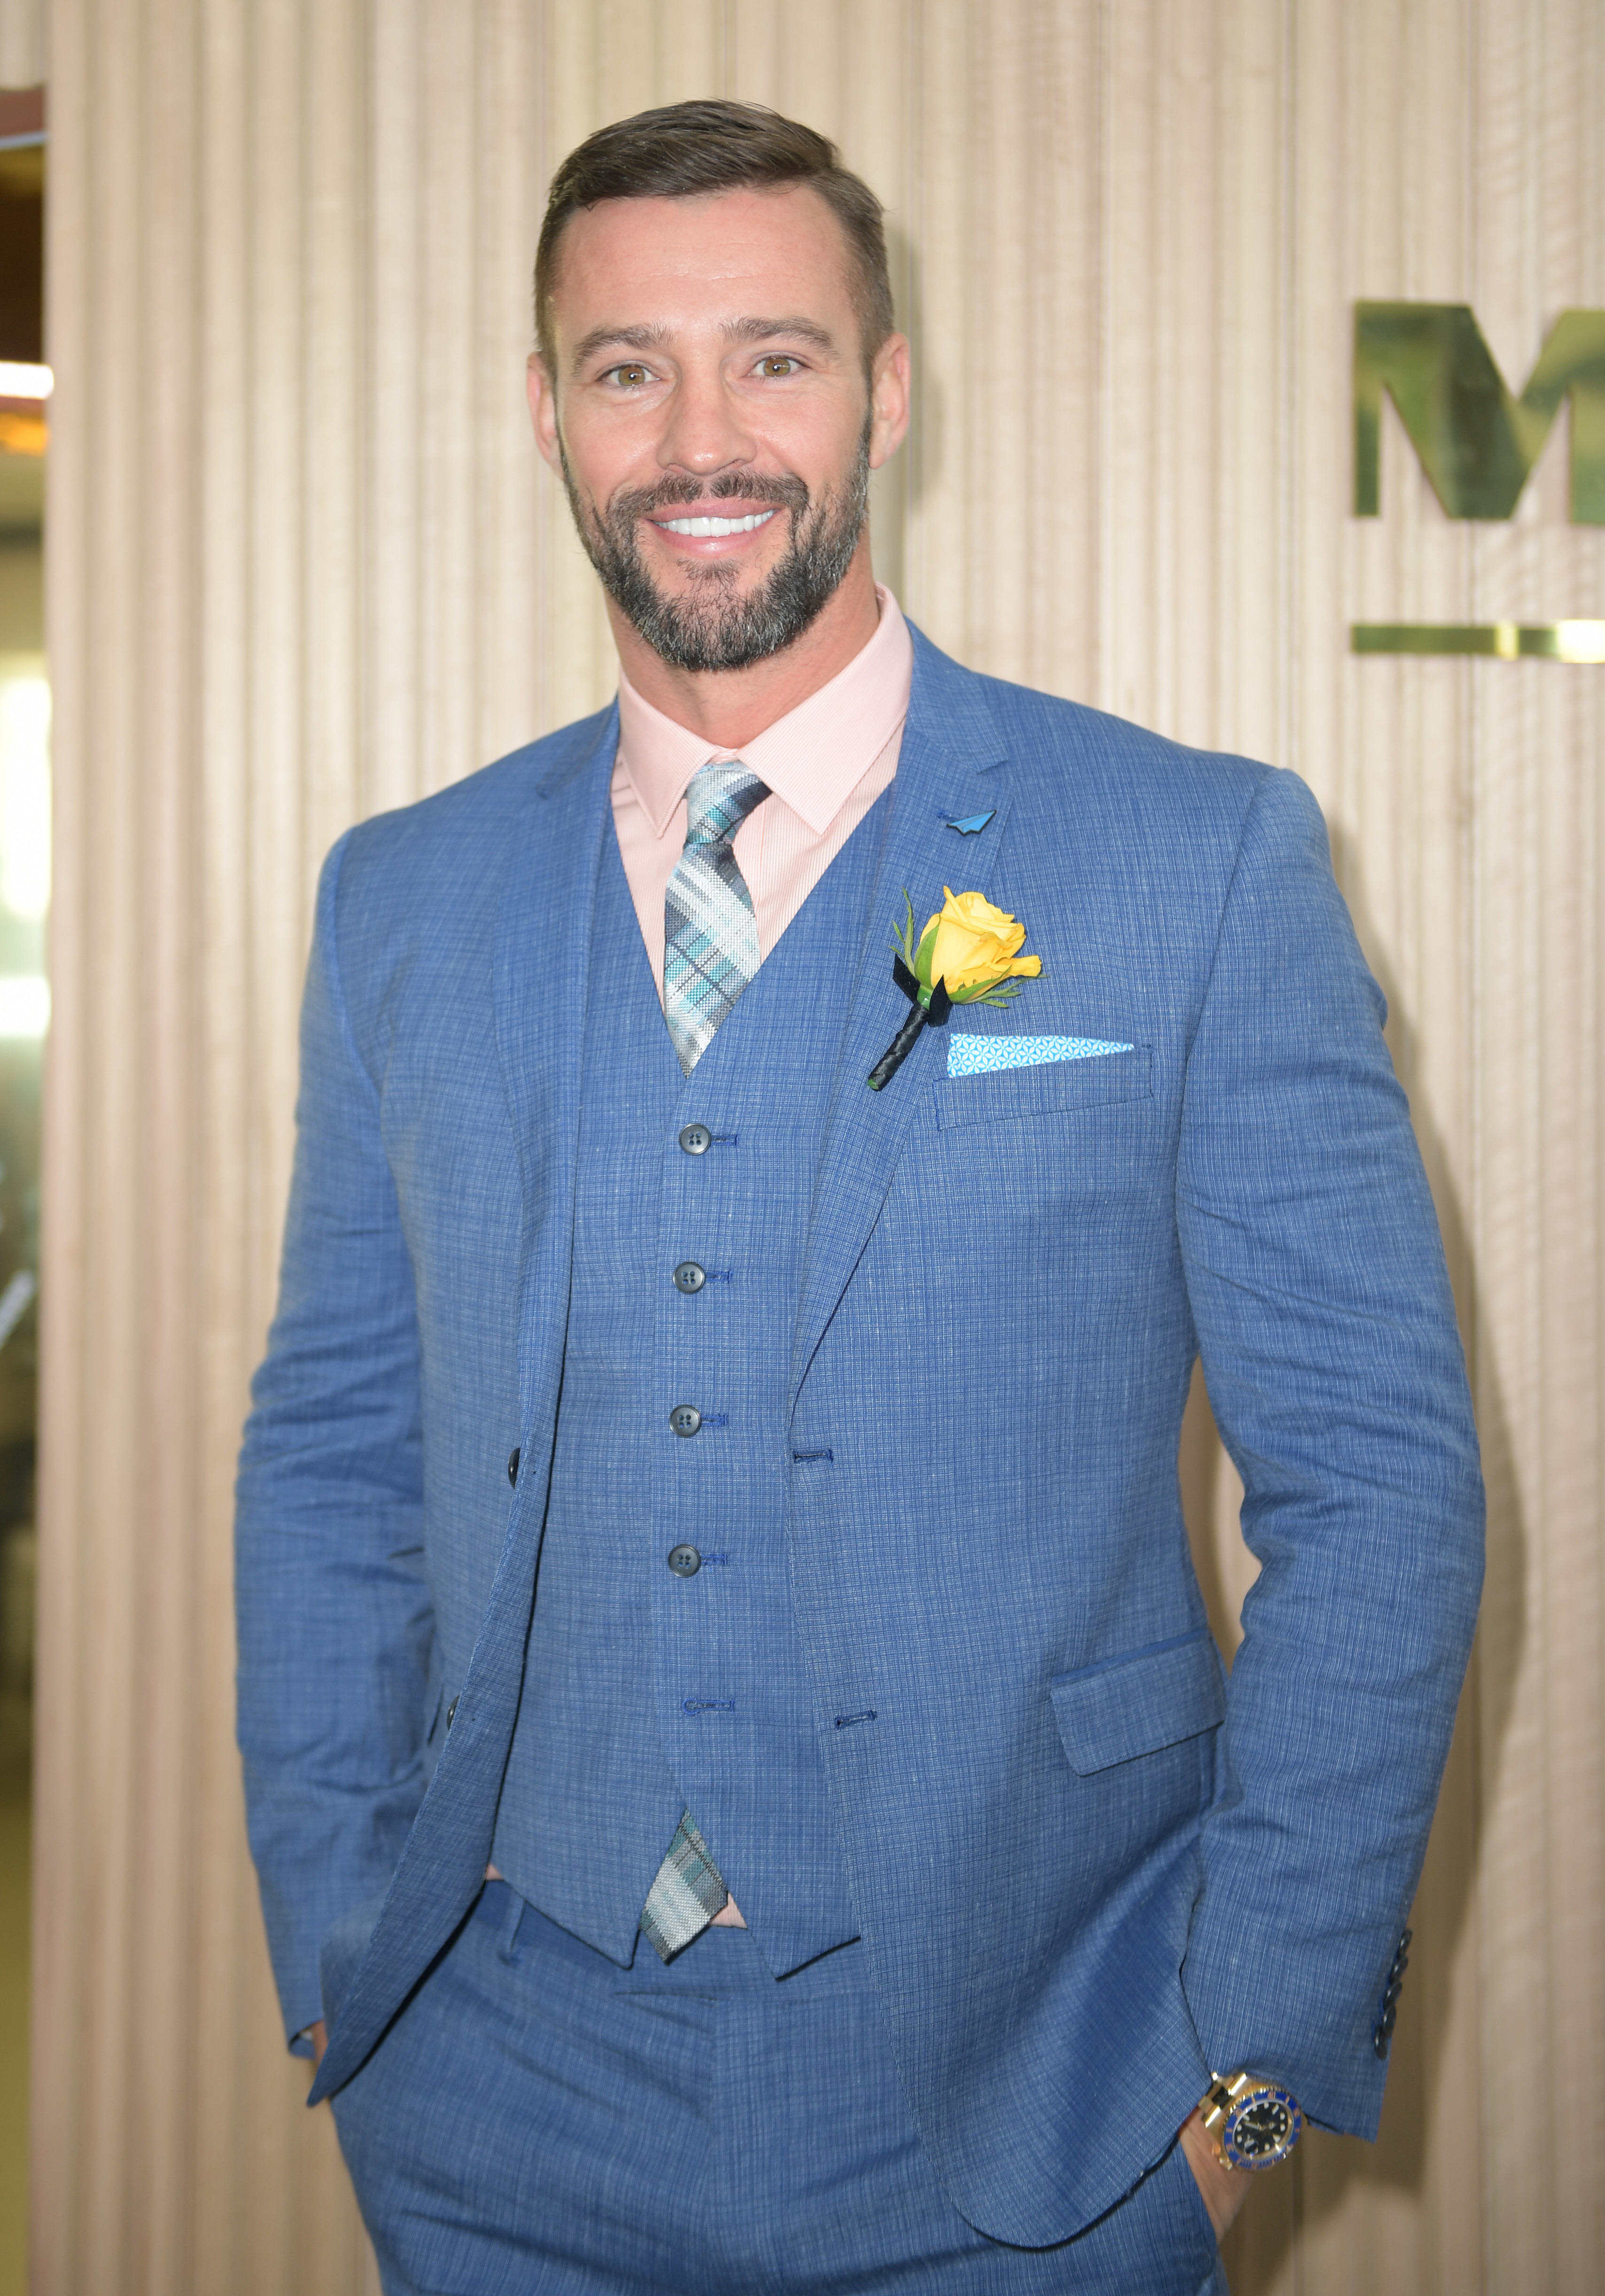 Old Fashioned Cool Suits For Weddings Festooning - Colorful Wedding ...